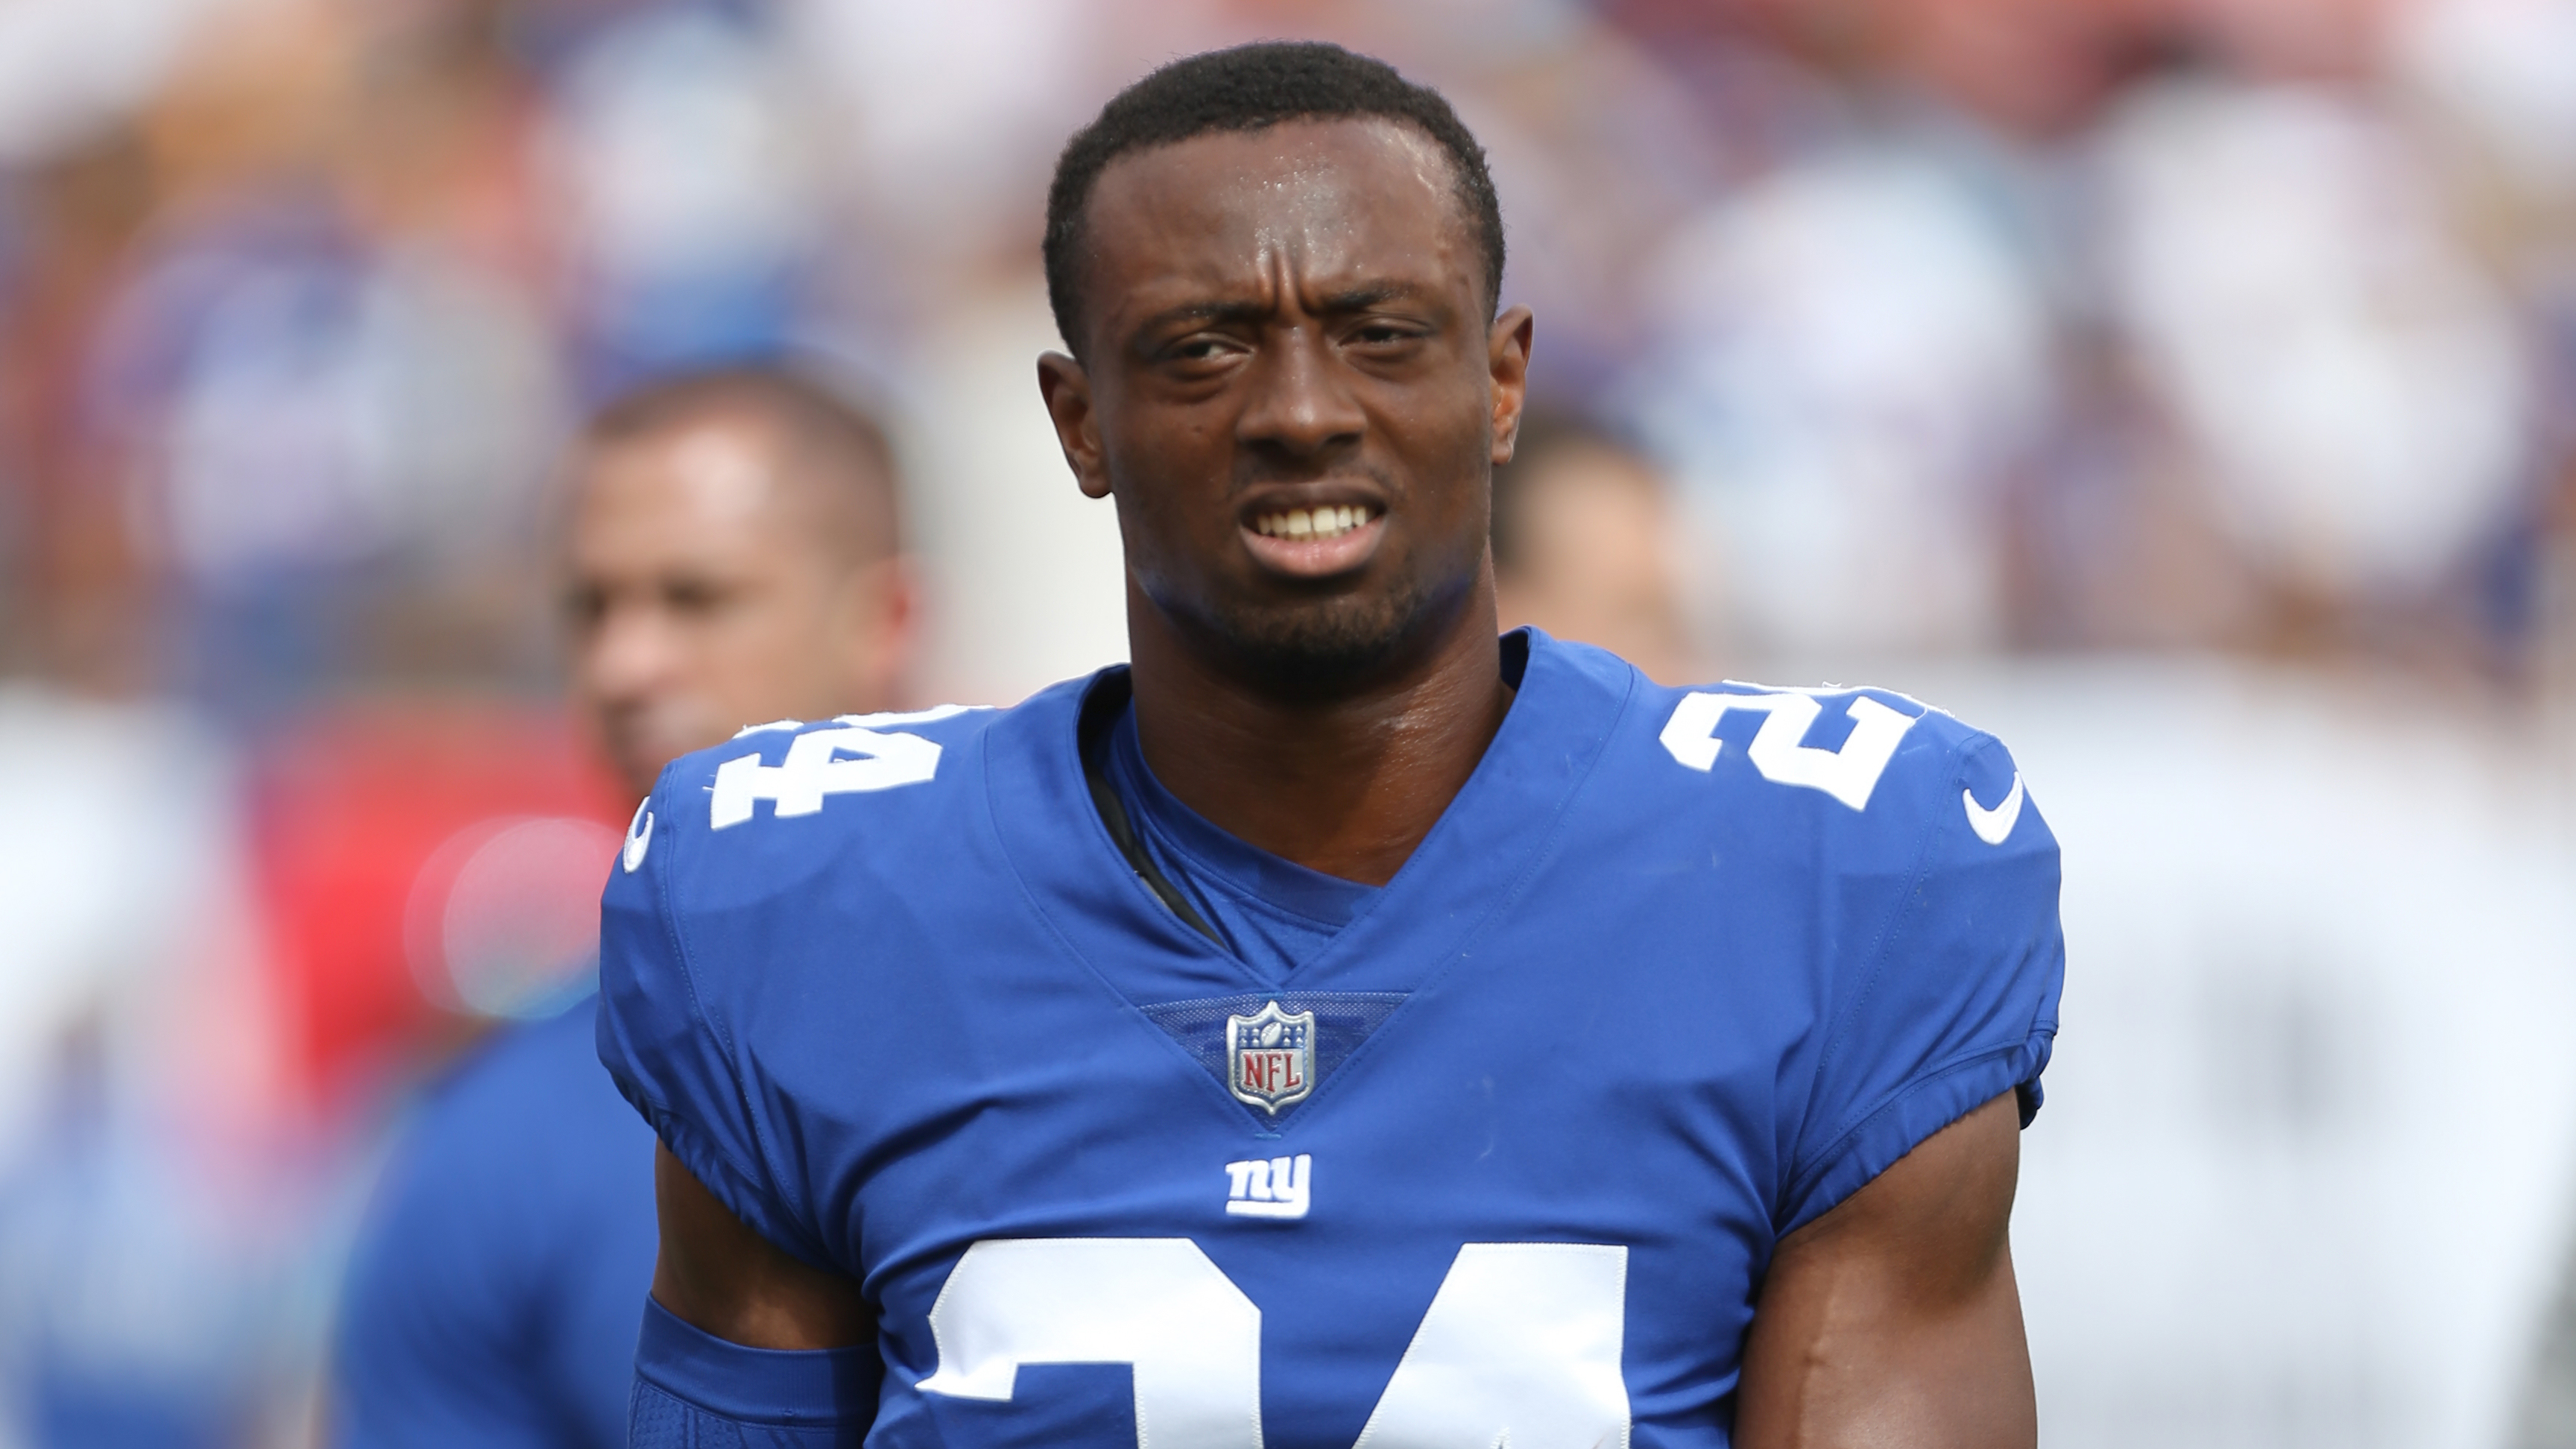 Eli Apple Giants CB tweets during game faces punishment